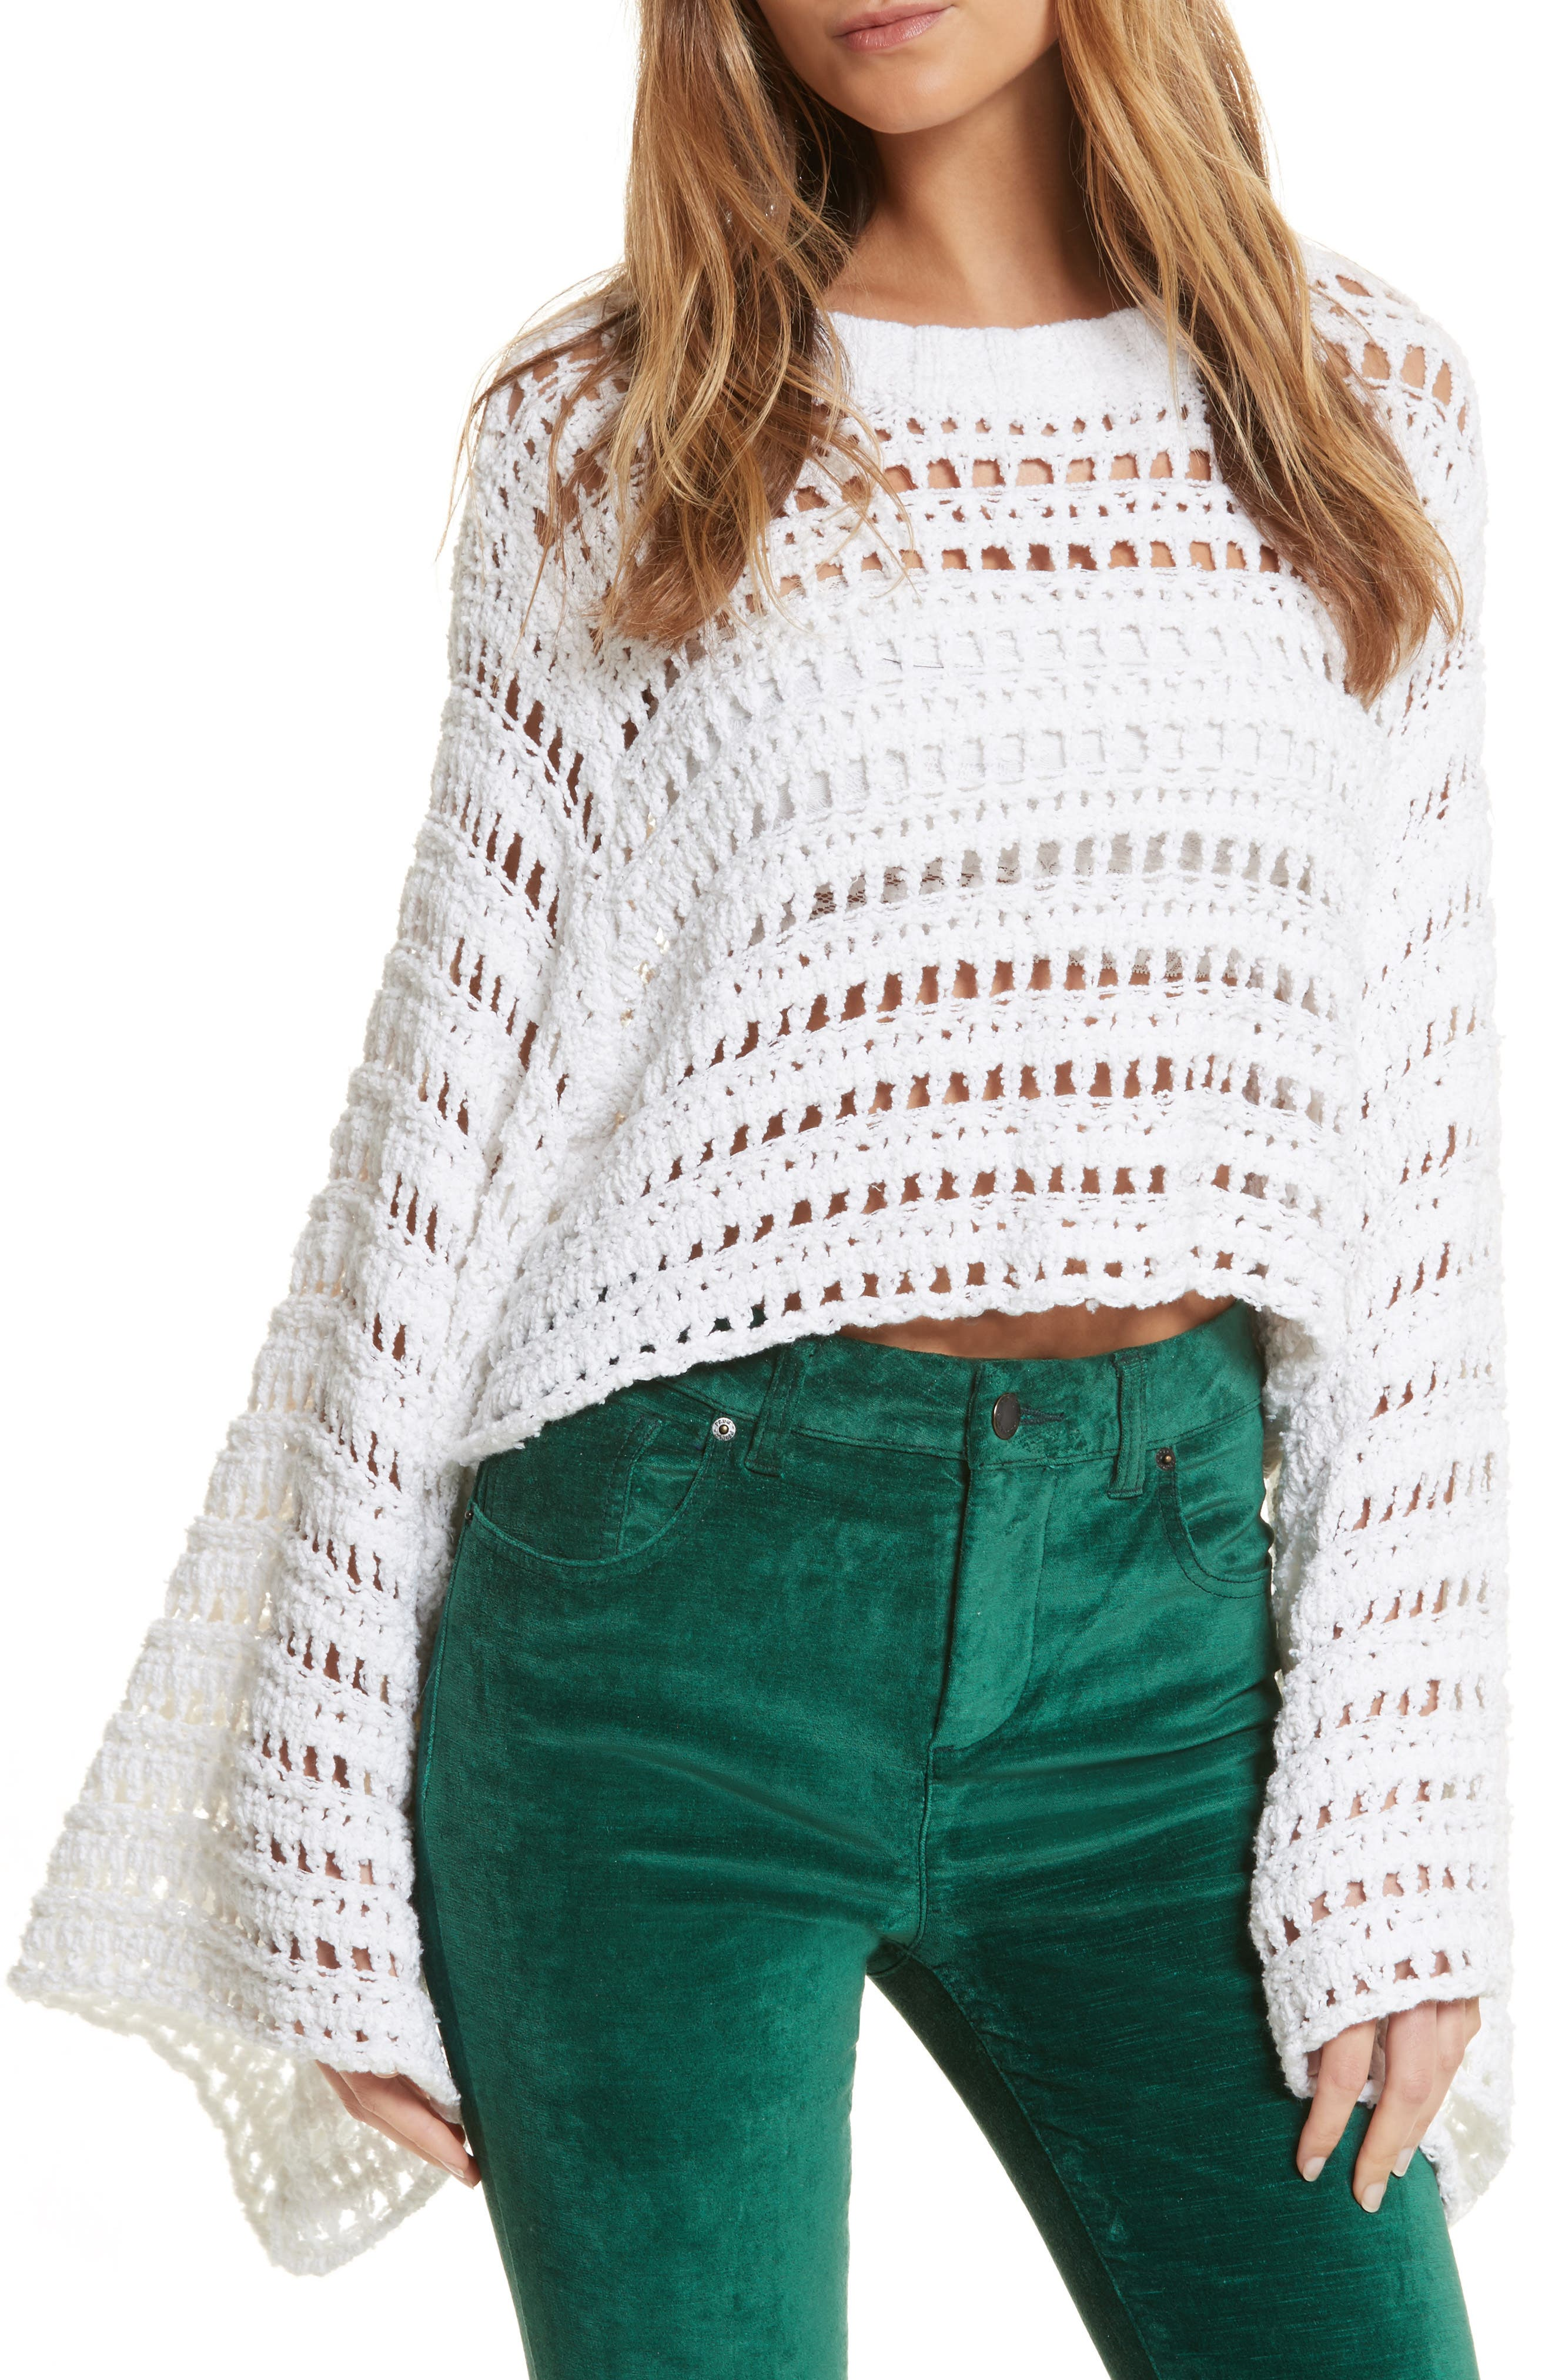 Caught Up Crochet Top,                         Main,                         color, White